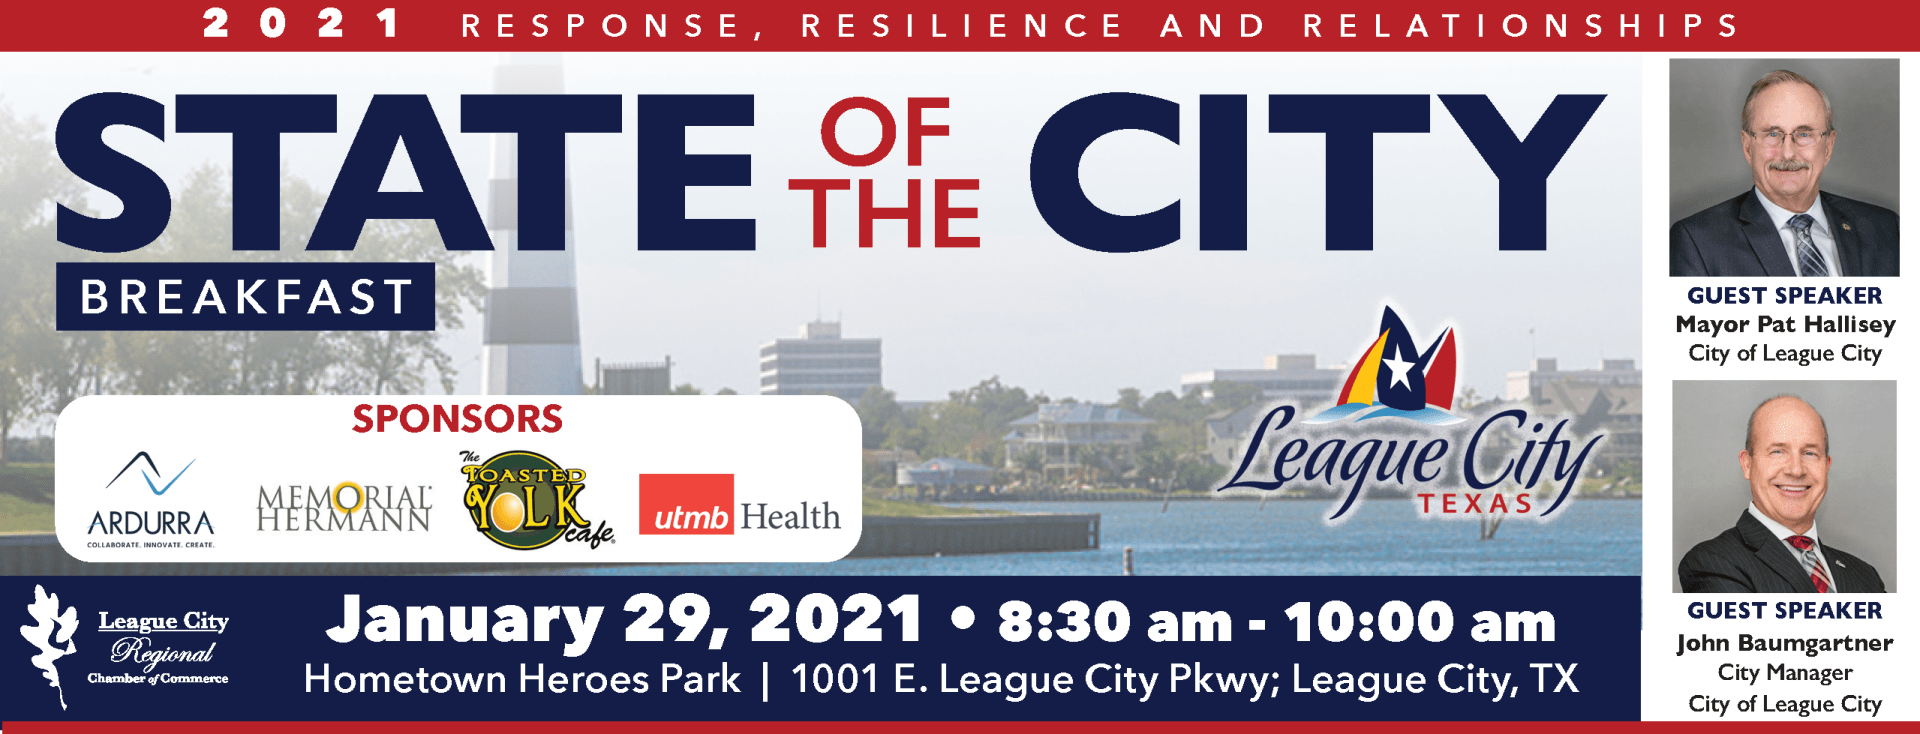 State-of-the-City21-Flyer-w720.png